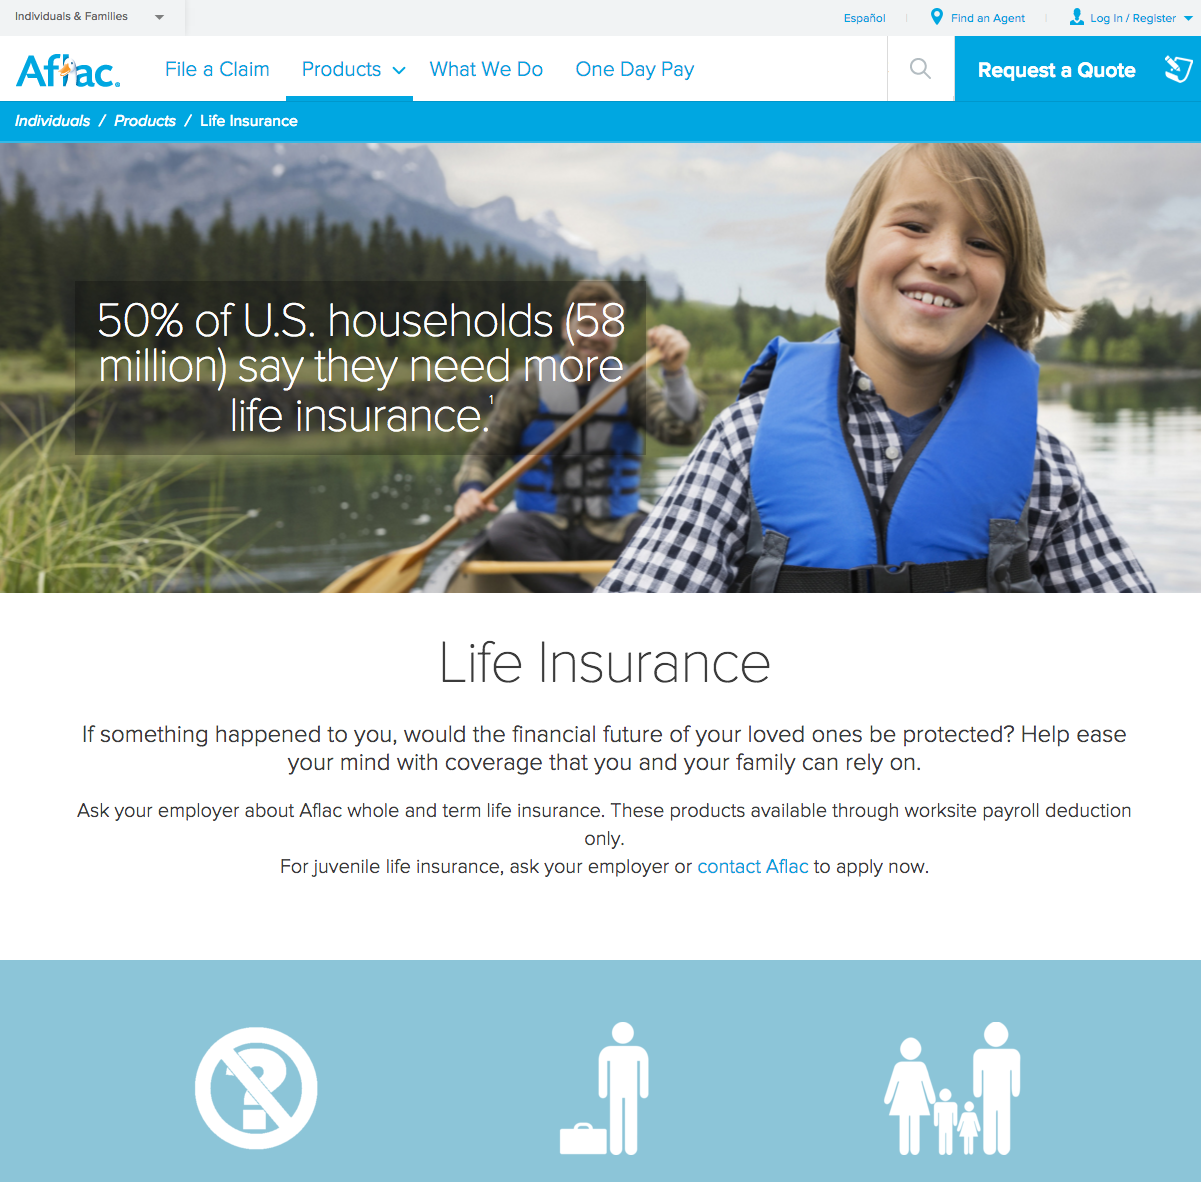 Top 8 Complaints And Reviews About Aflac Life Insurance. Reasons For Drug Addiction Tree Removal Plano. Credit Card Security Standards. Tree Trimming Santa Barbara Us Bank Review. Medical Assistant Clinical Duties. Mary Kay Firming Eye Cream Reviews. Free Online Project Management Tools. Life Settlement Mutual Funds. Marion County Jail Ocala Florida